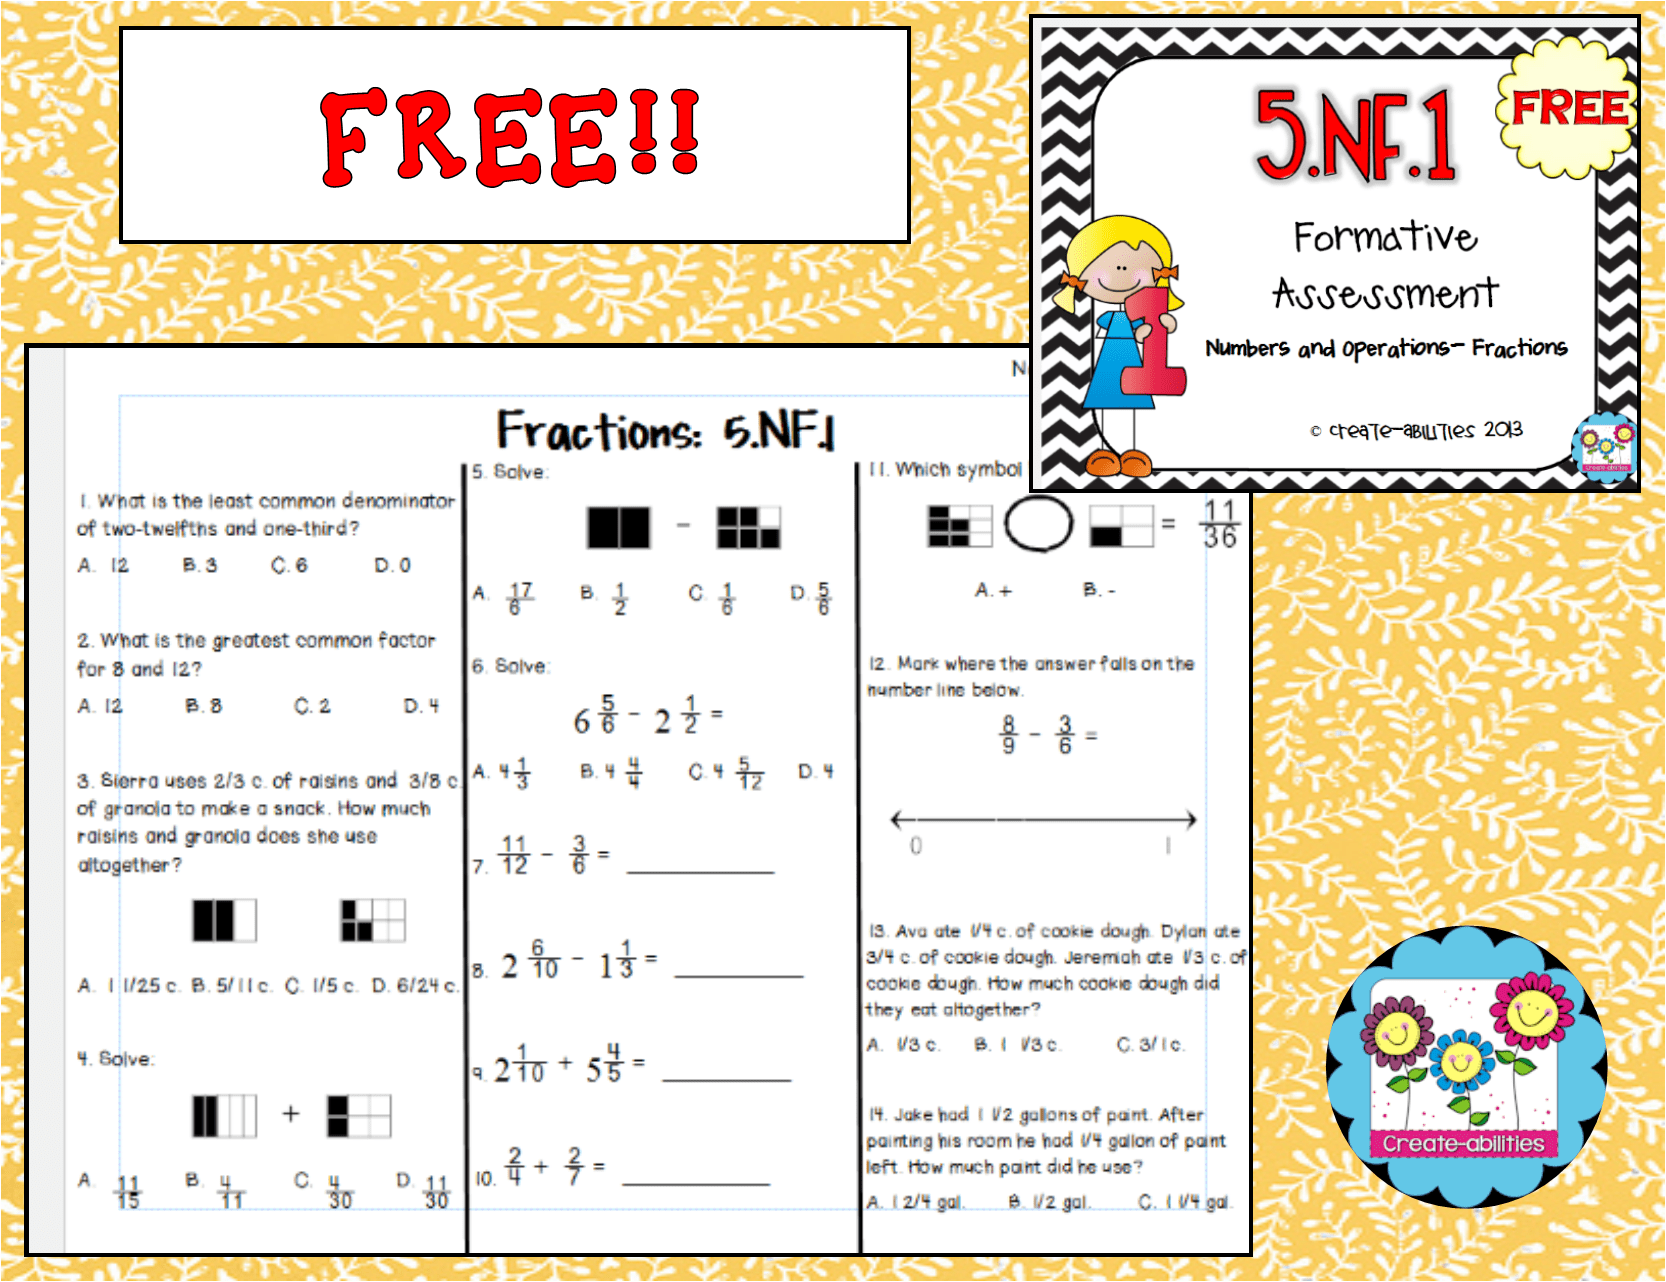 Free 5 1 Formative Assessment And Answer Key A Free Assessment For Adding And Subtracting